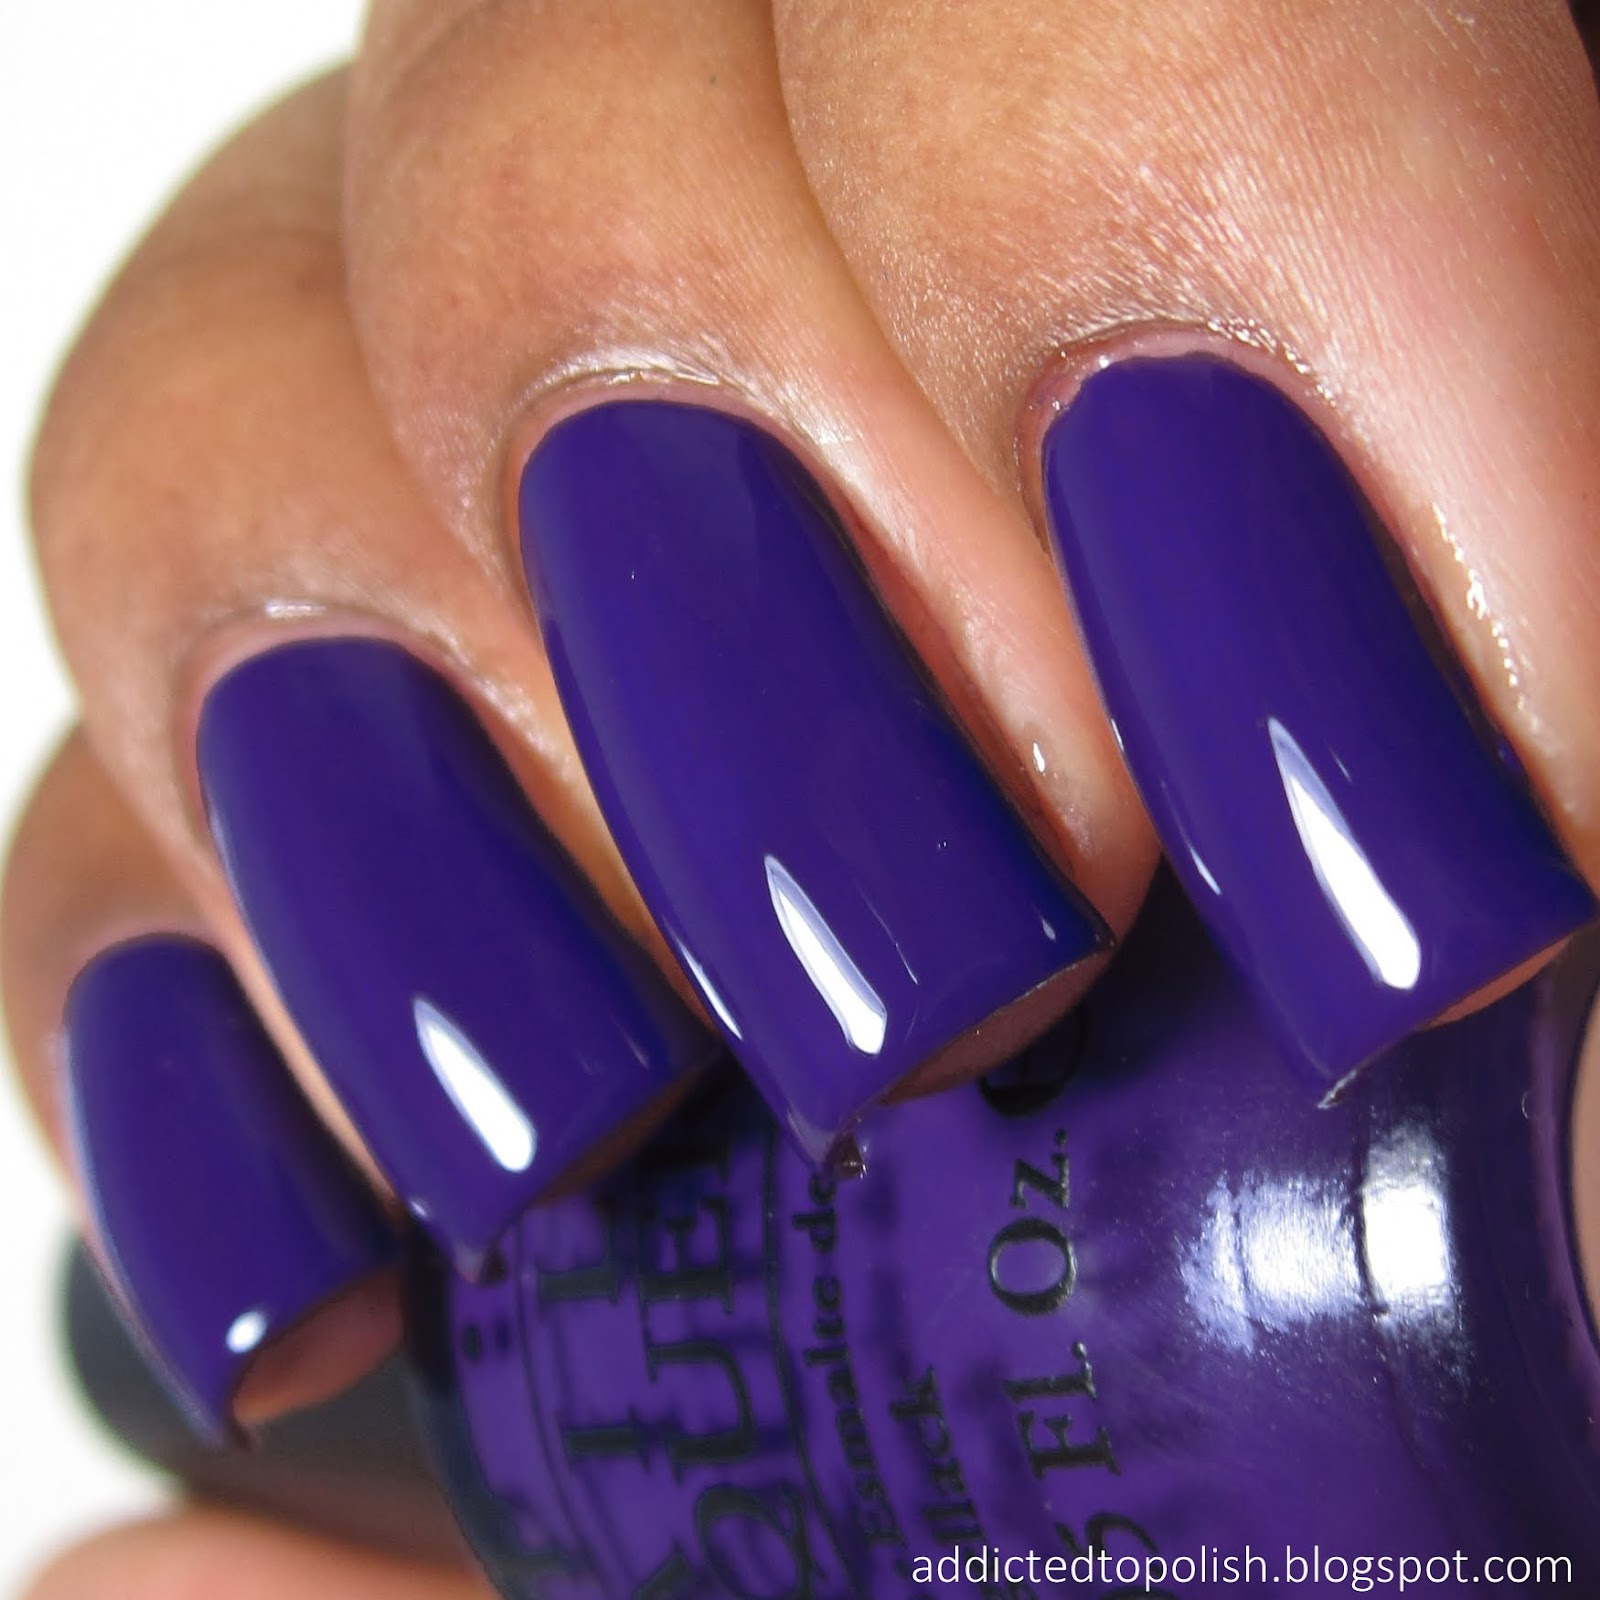 opi-nordic-do-you-have-this-color-in-stockholm